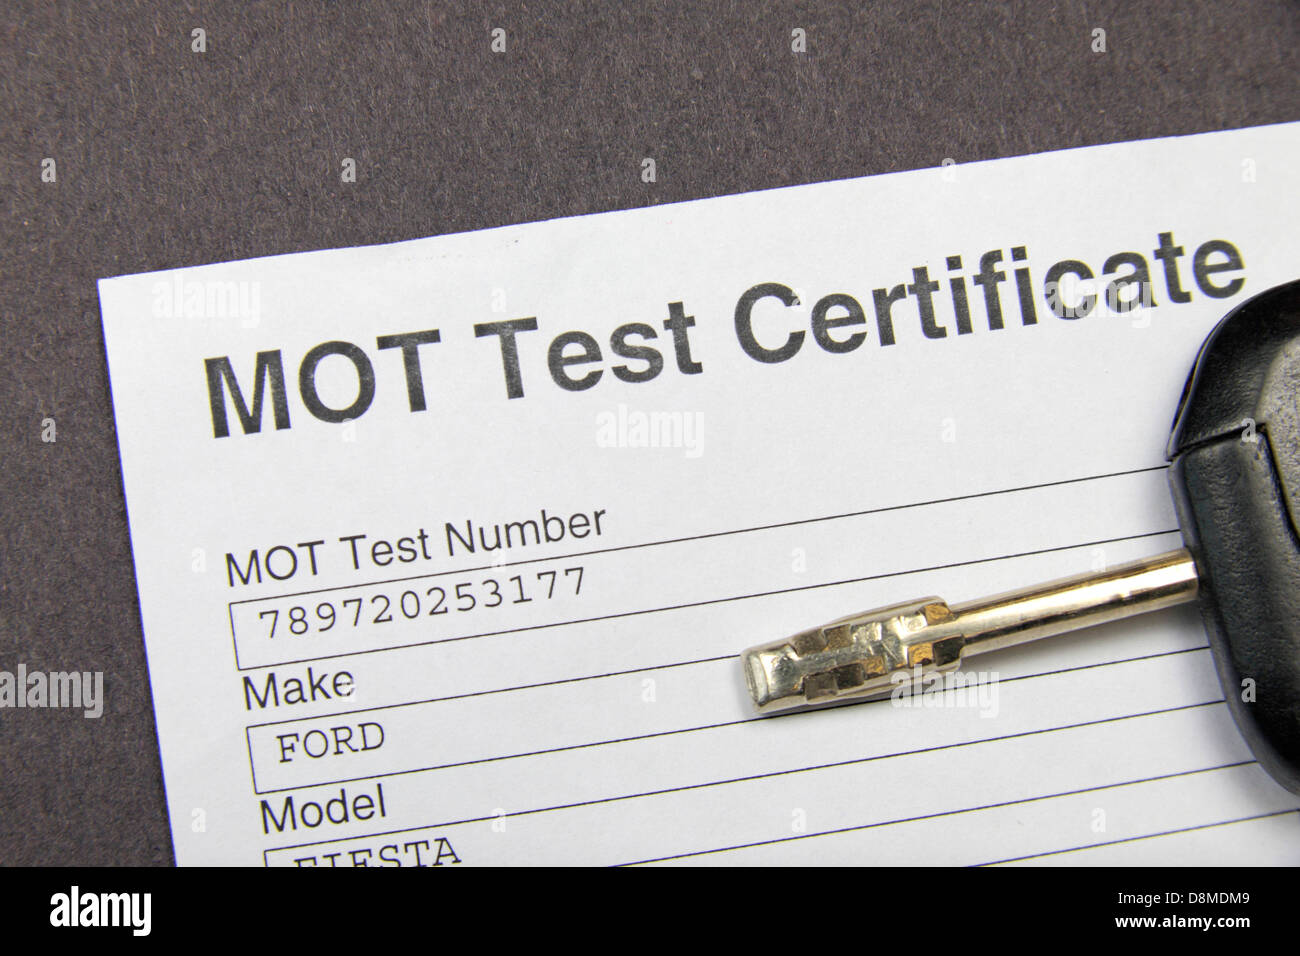 A British MOT Test certificate as issued by the VOSA (Vehicle & Operator Services Agency) in May 2013. - Stock Image